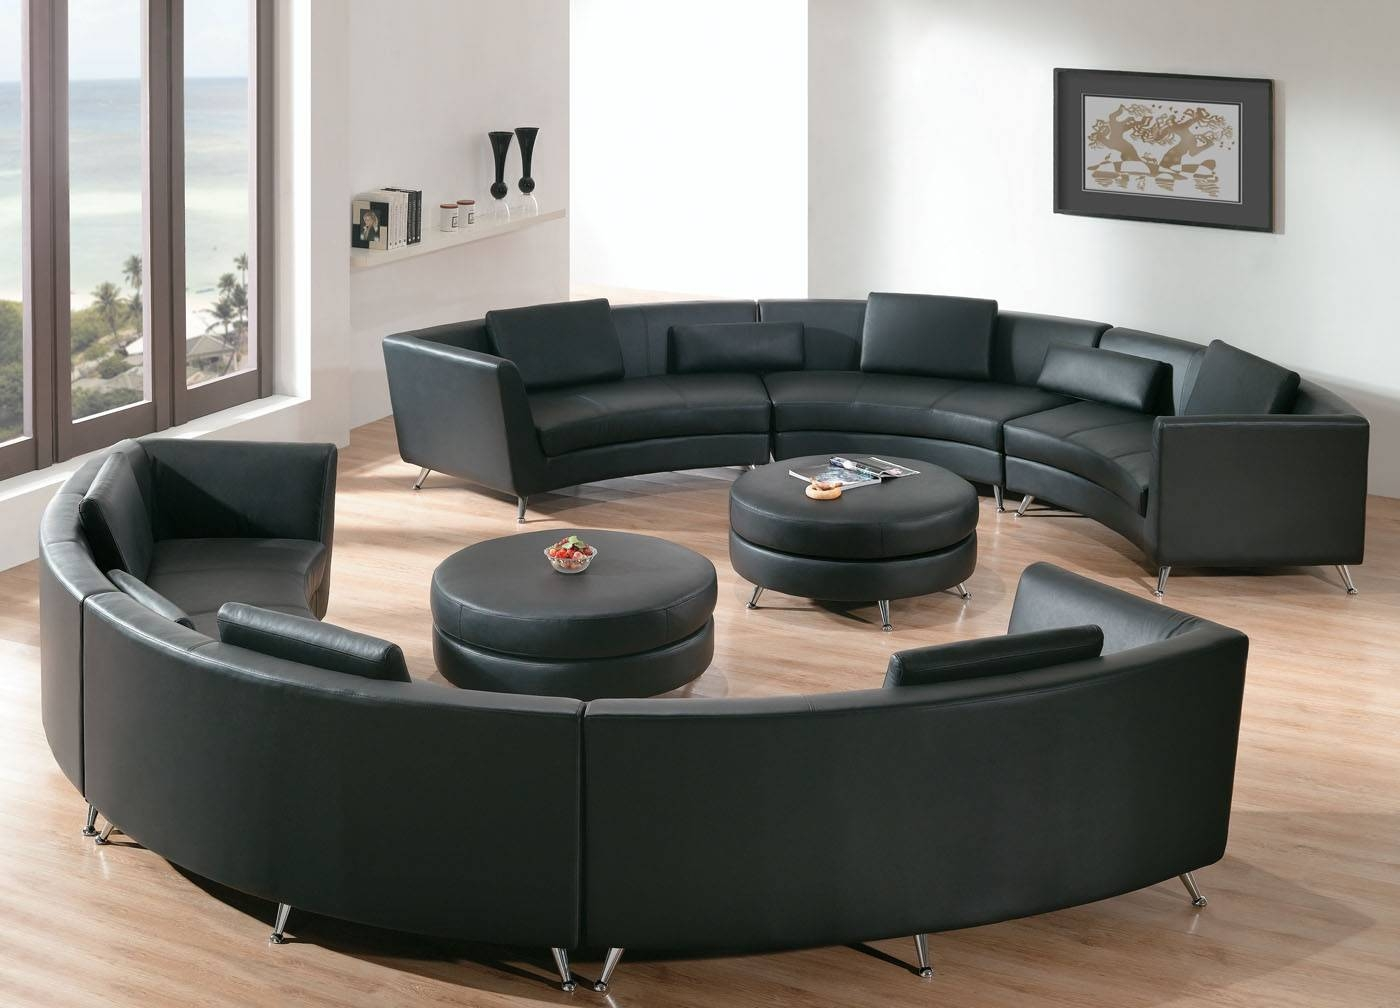 Round Sectional Sofa For Unique Seating Alternative - Traba Homes with Round Sectional Sofa Bed (Image 22 of 25)